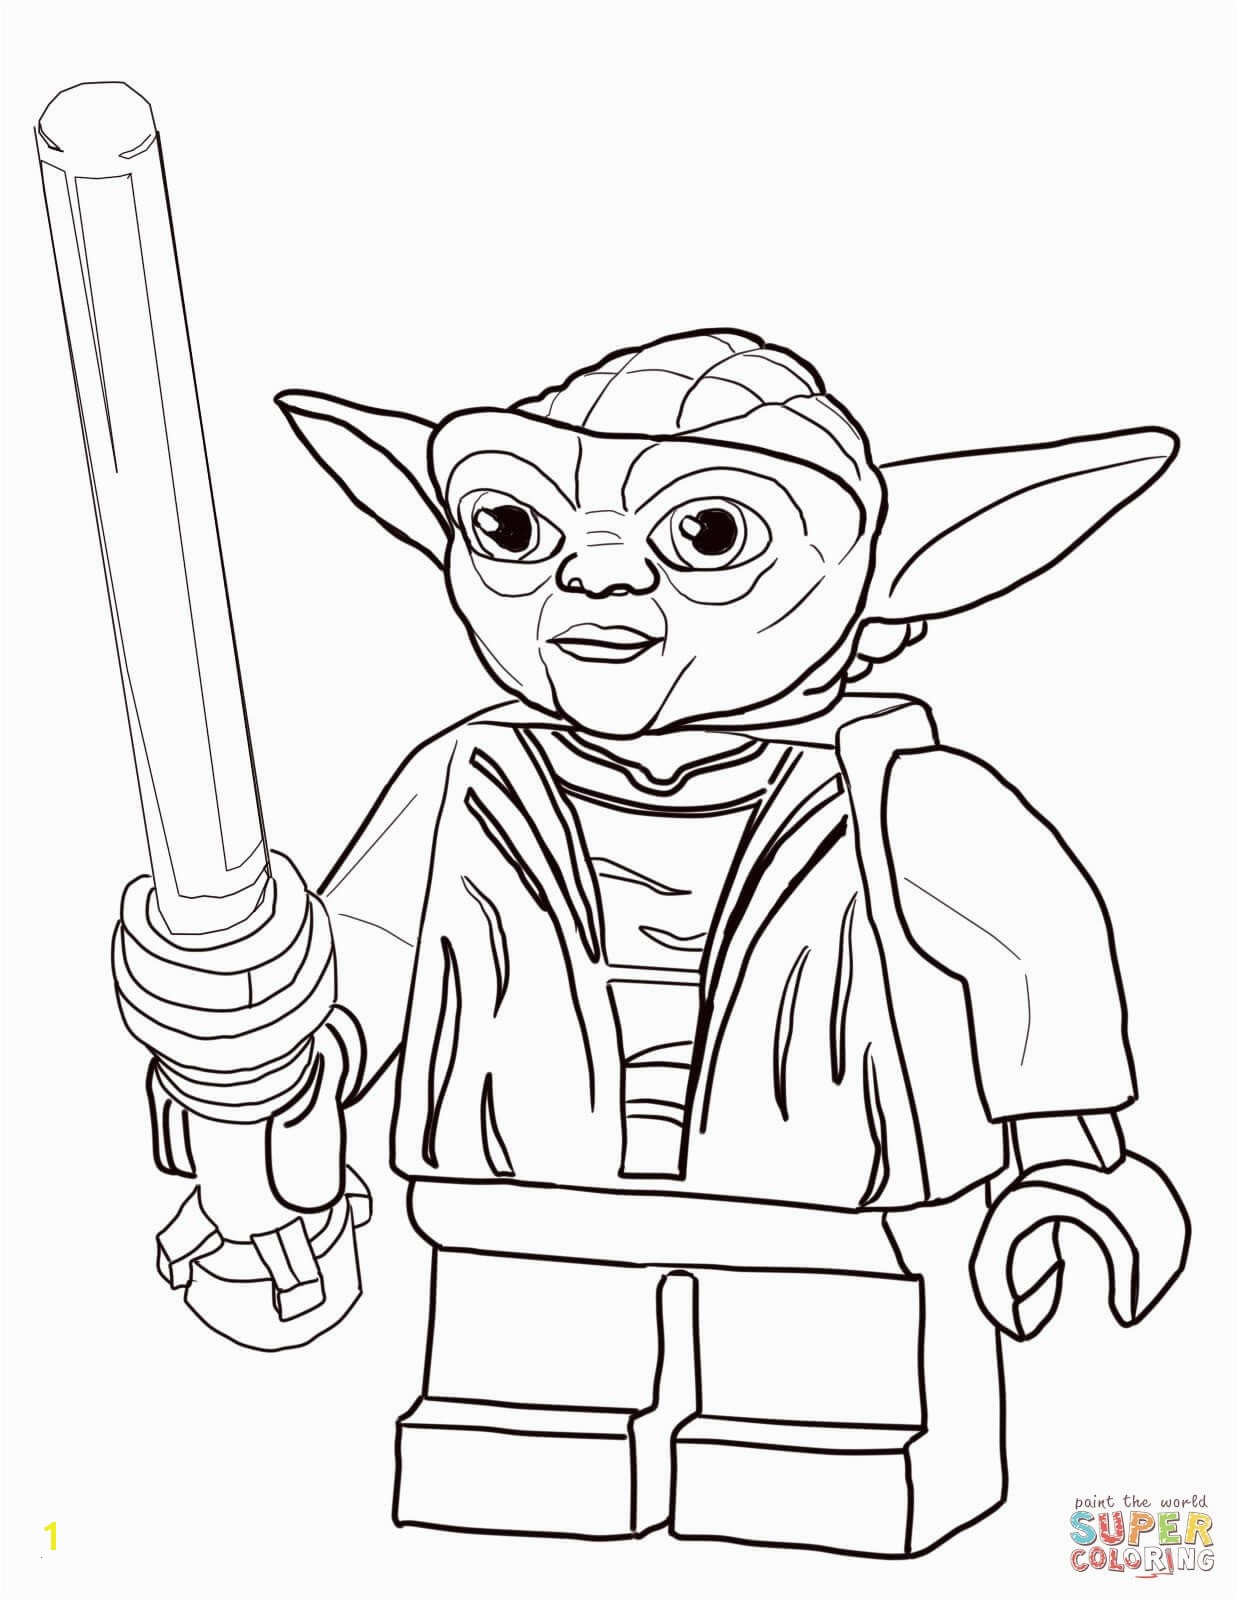 Lego Star Wars Printable Coloring Pages Star Wars Coloring Pages Free attractive Lego Star Wars Printable